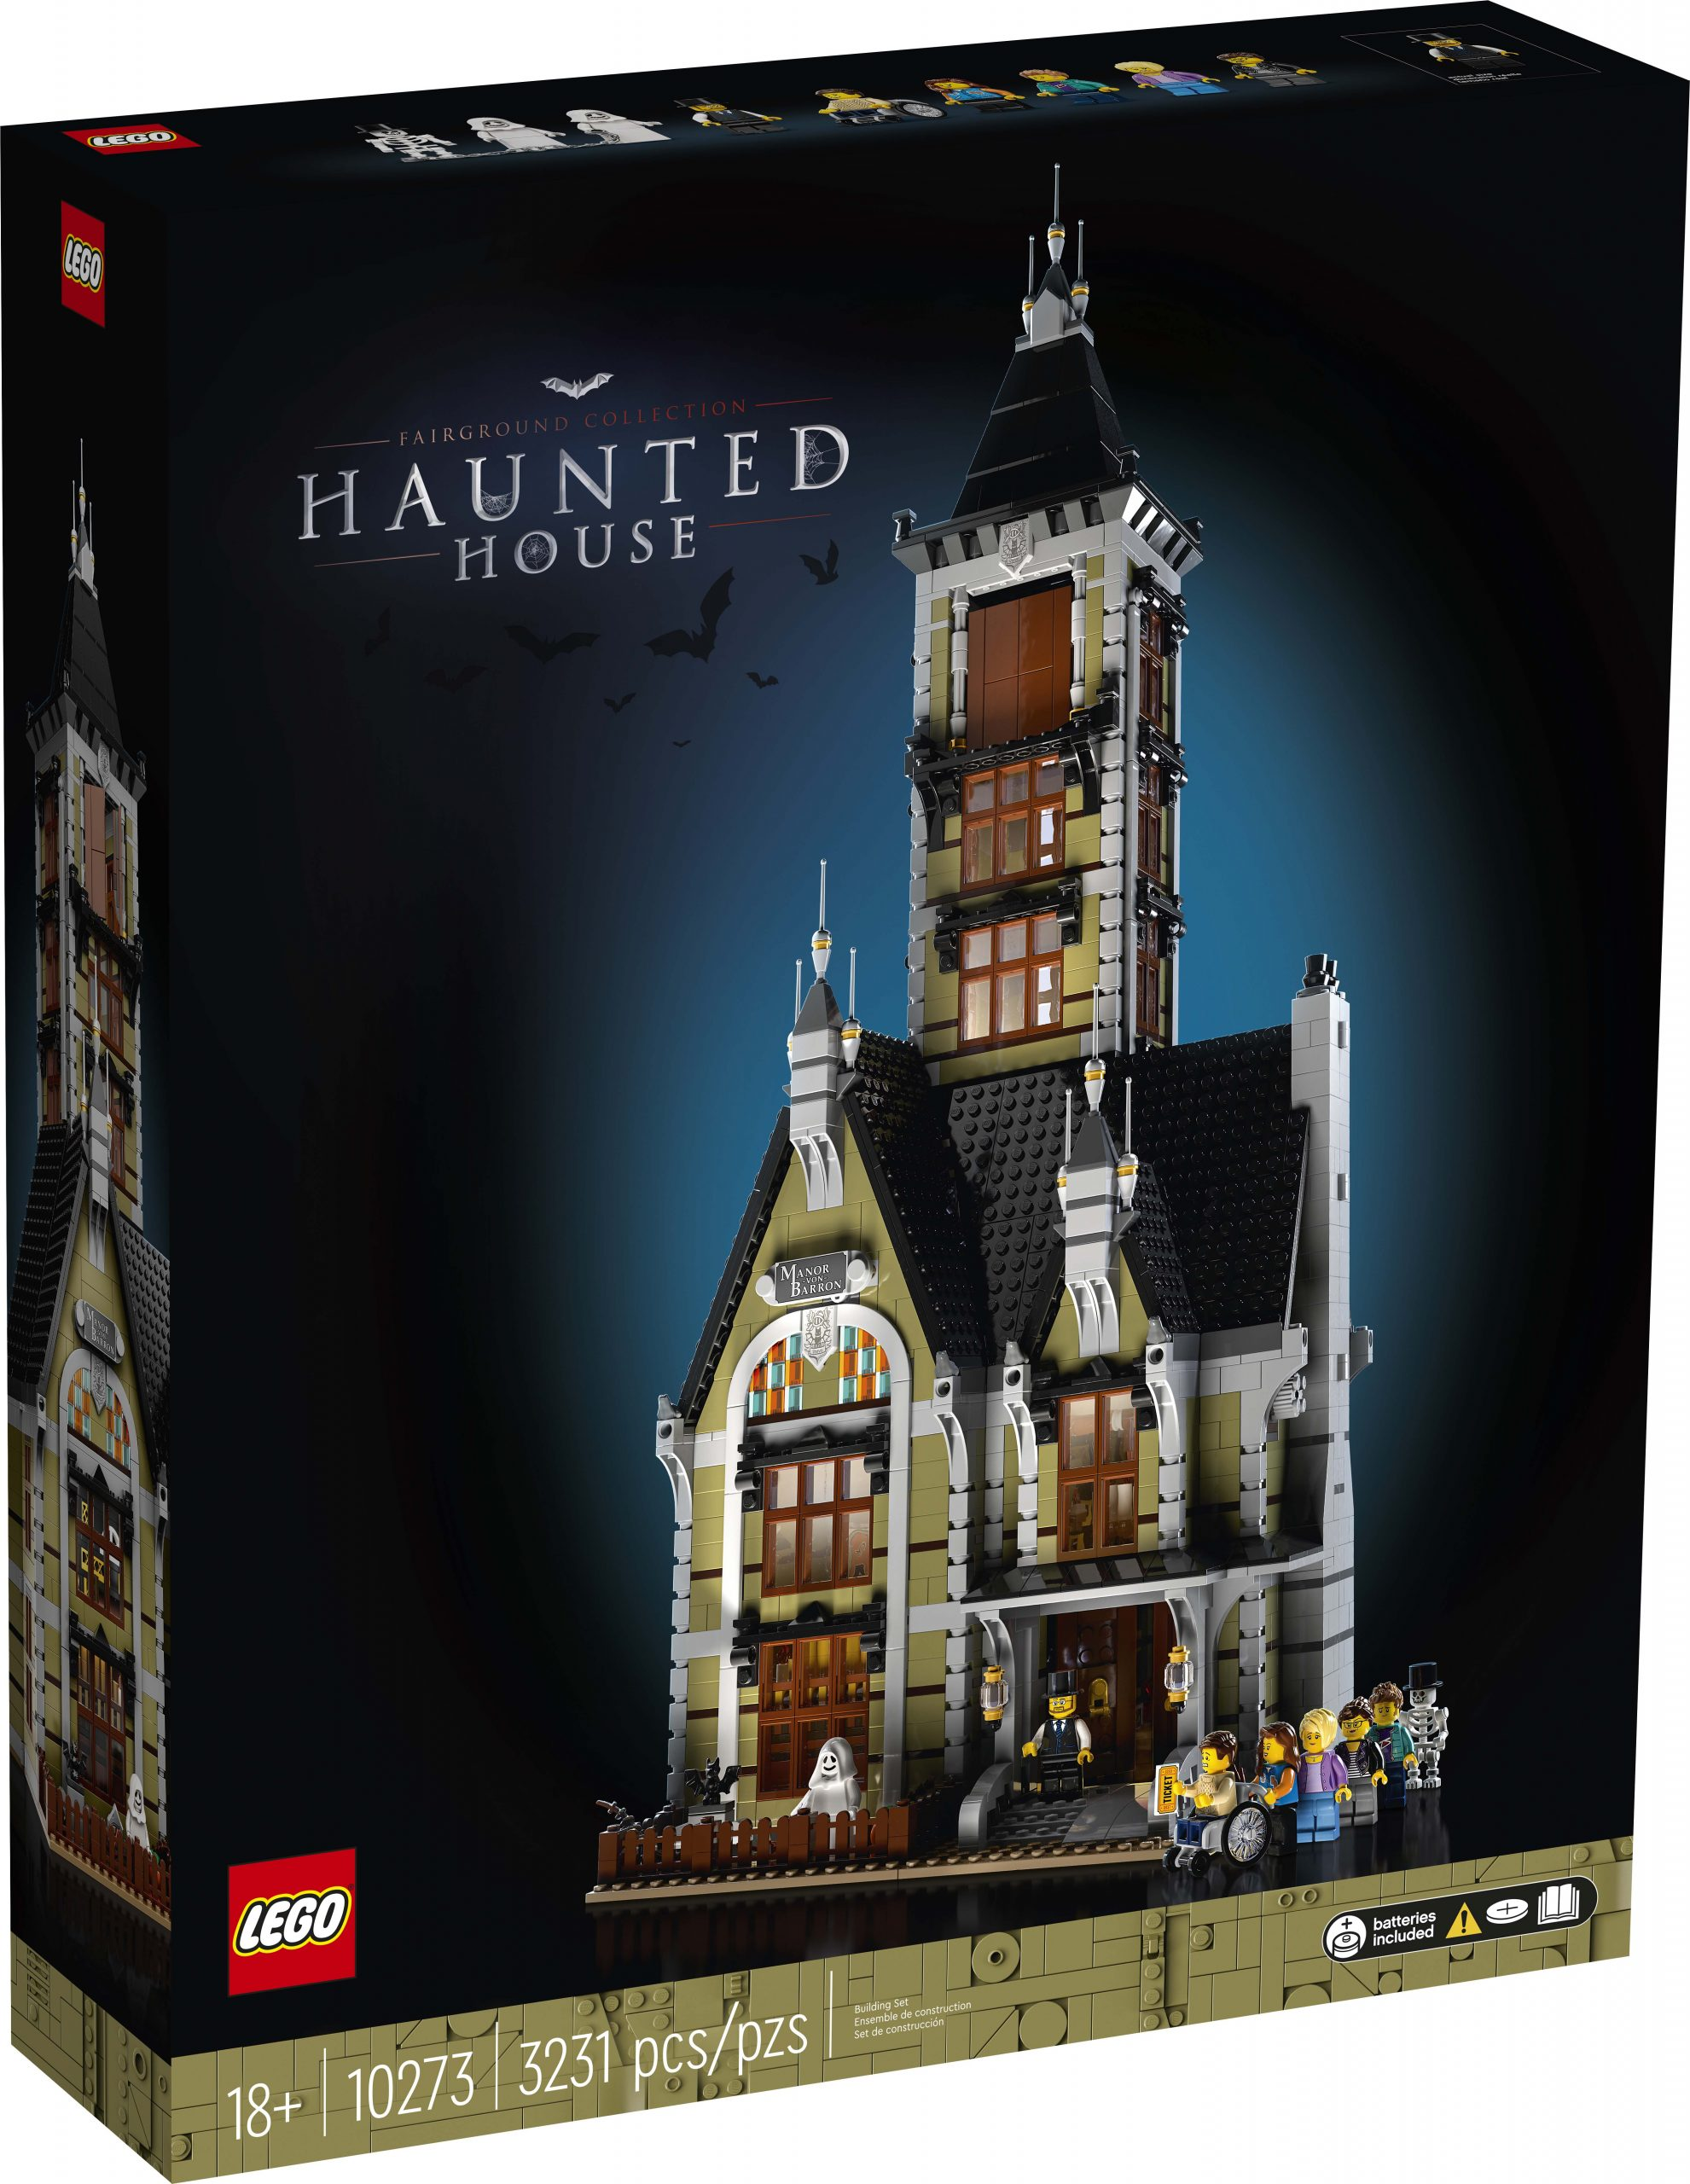 LEGO-Fairground-Collection-Haunted-House